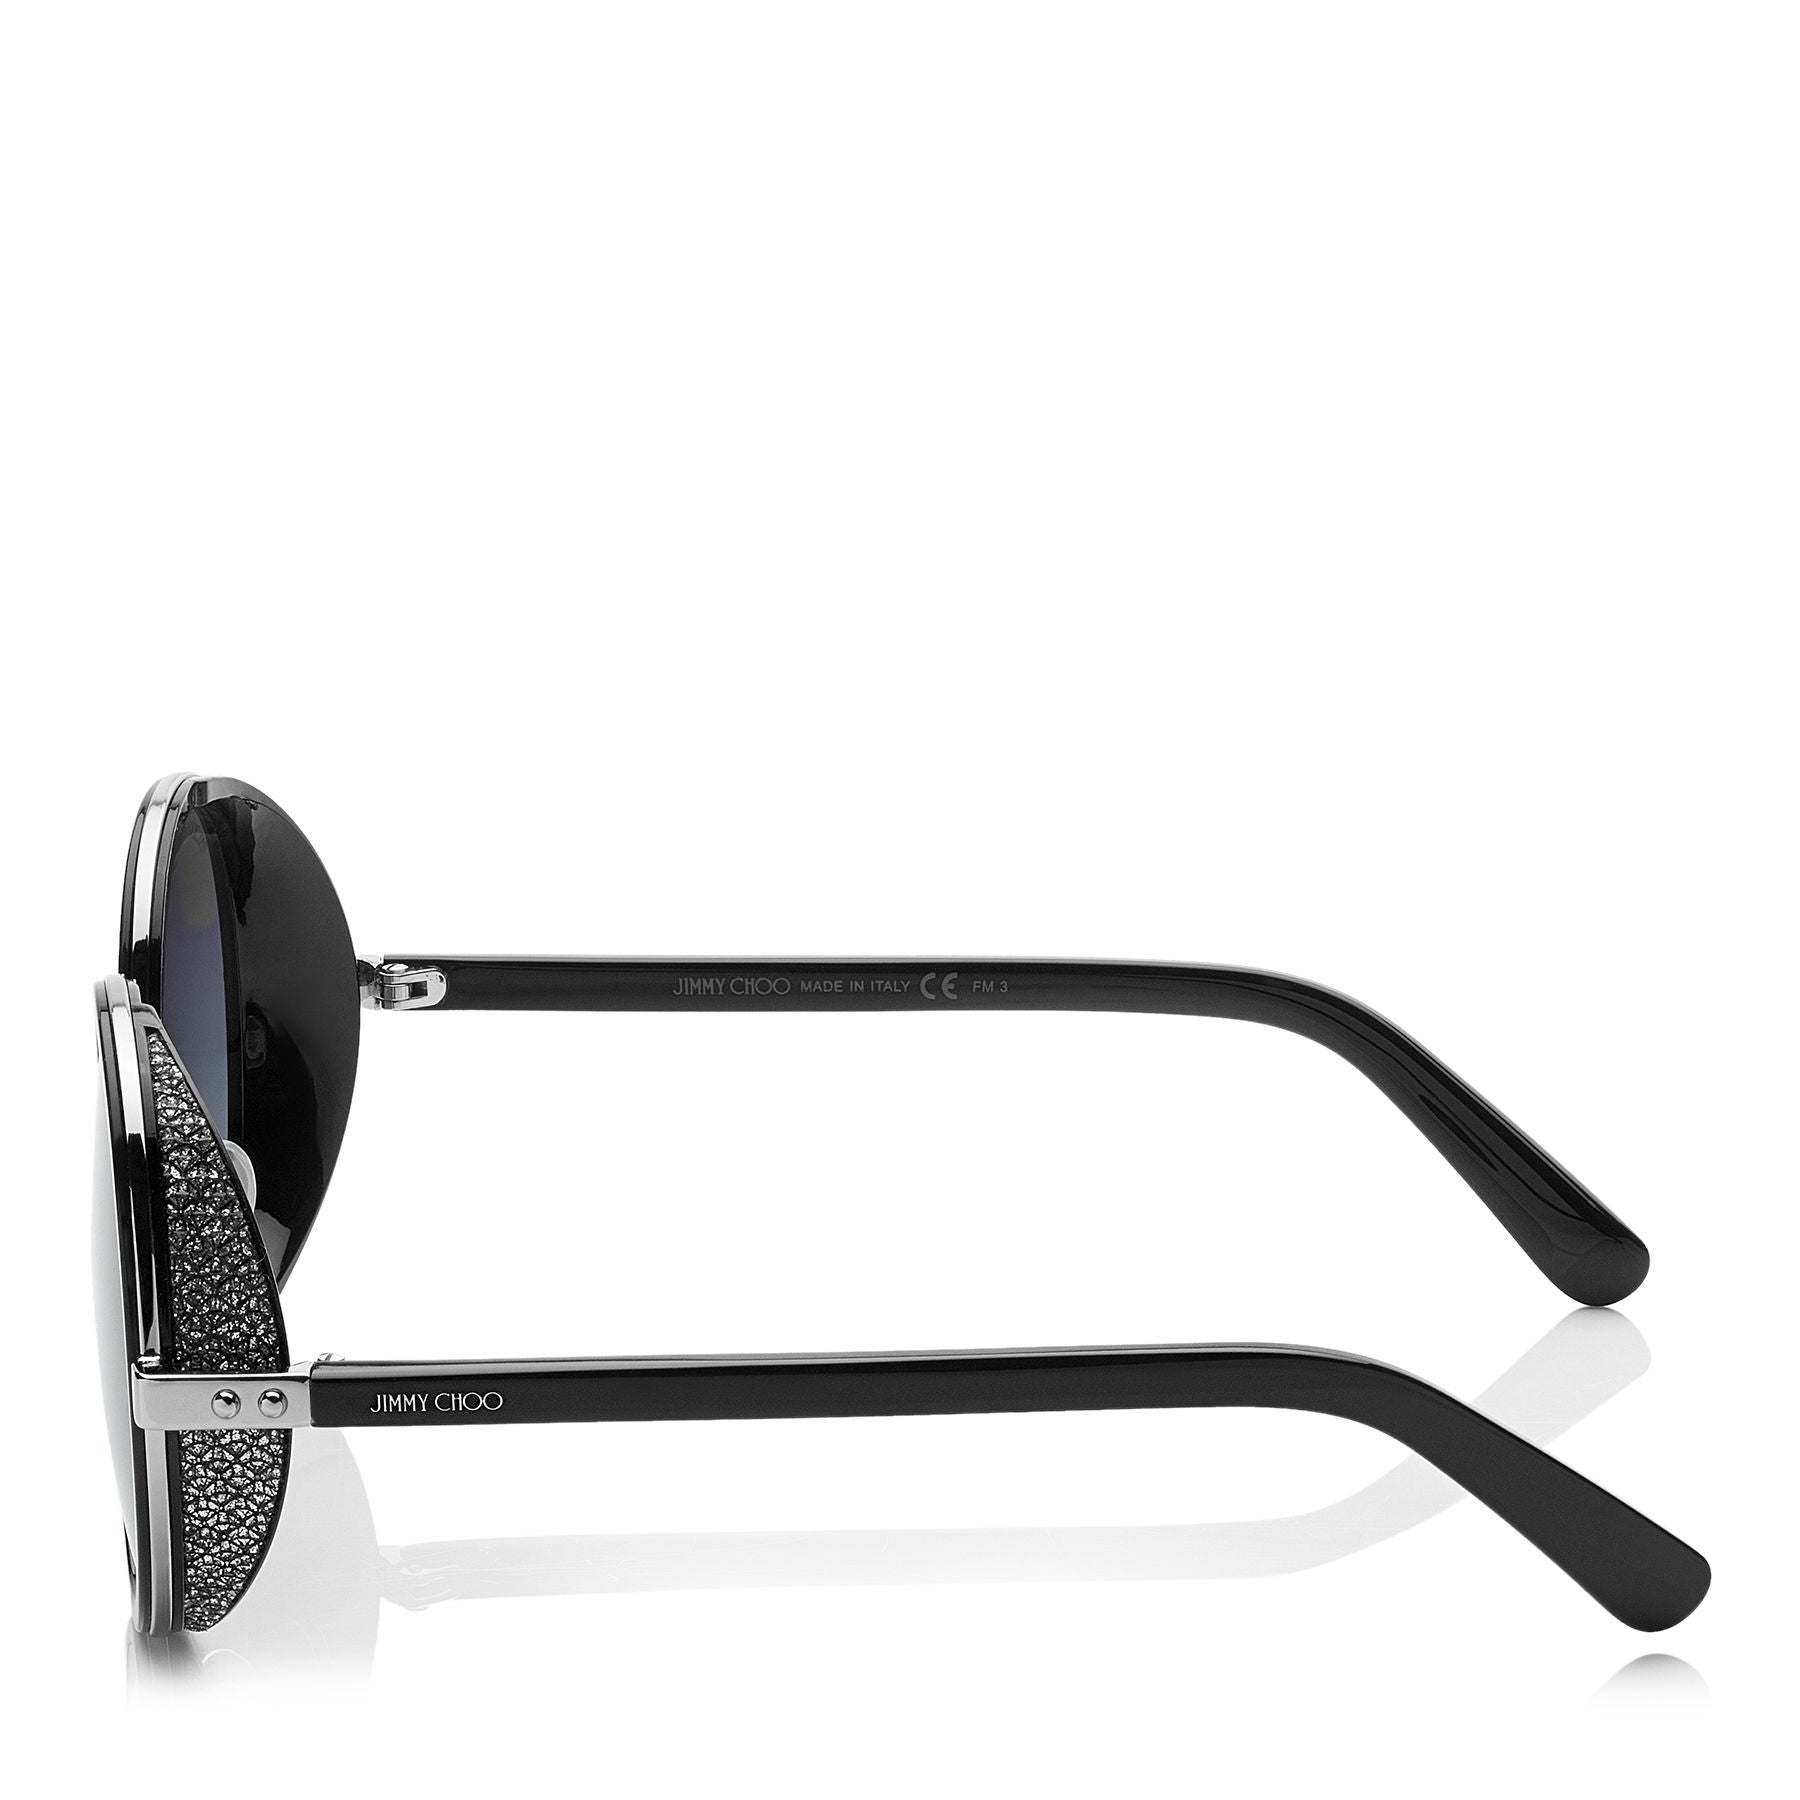 JIMMY CHOO Andie Black Acetate Round Framed Sunglasses with Silver ...